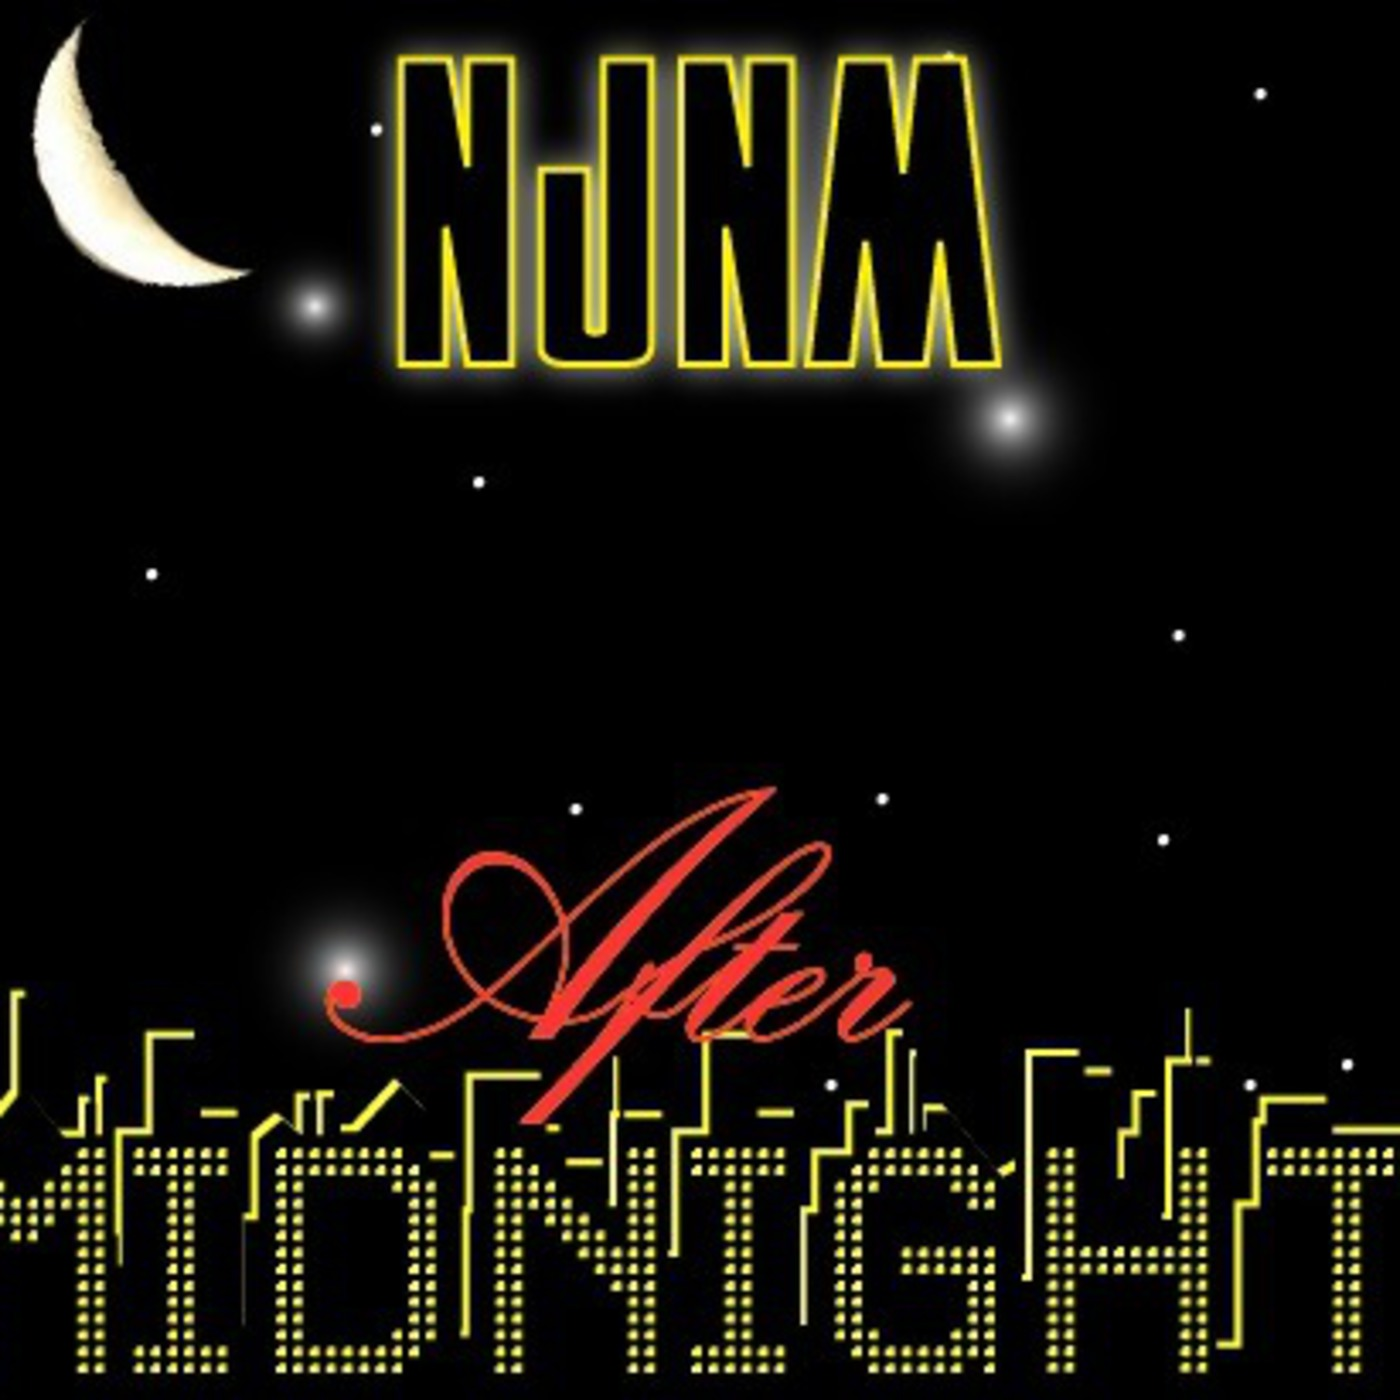 NJNM After Midnight